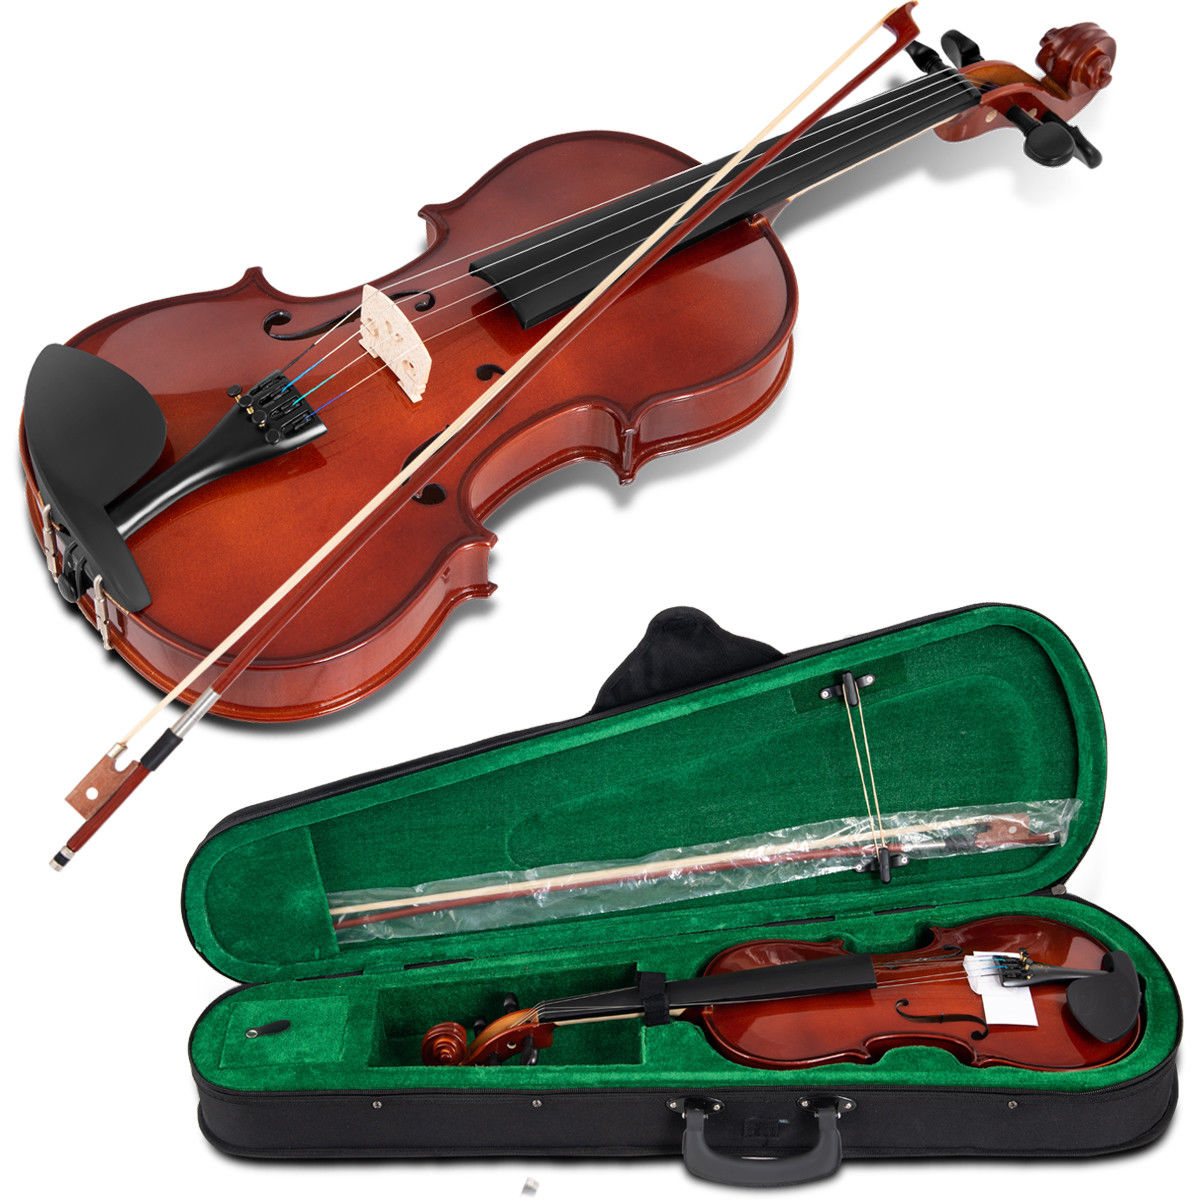 Full Size 4/4 Violin Solid Wood w/ Hard Case Bow Rosin Bridge Student Starter - image 9 de 10